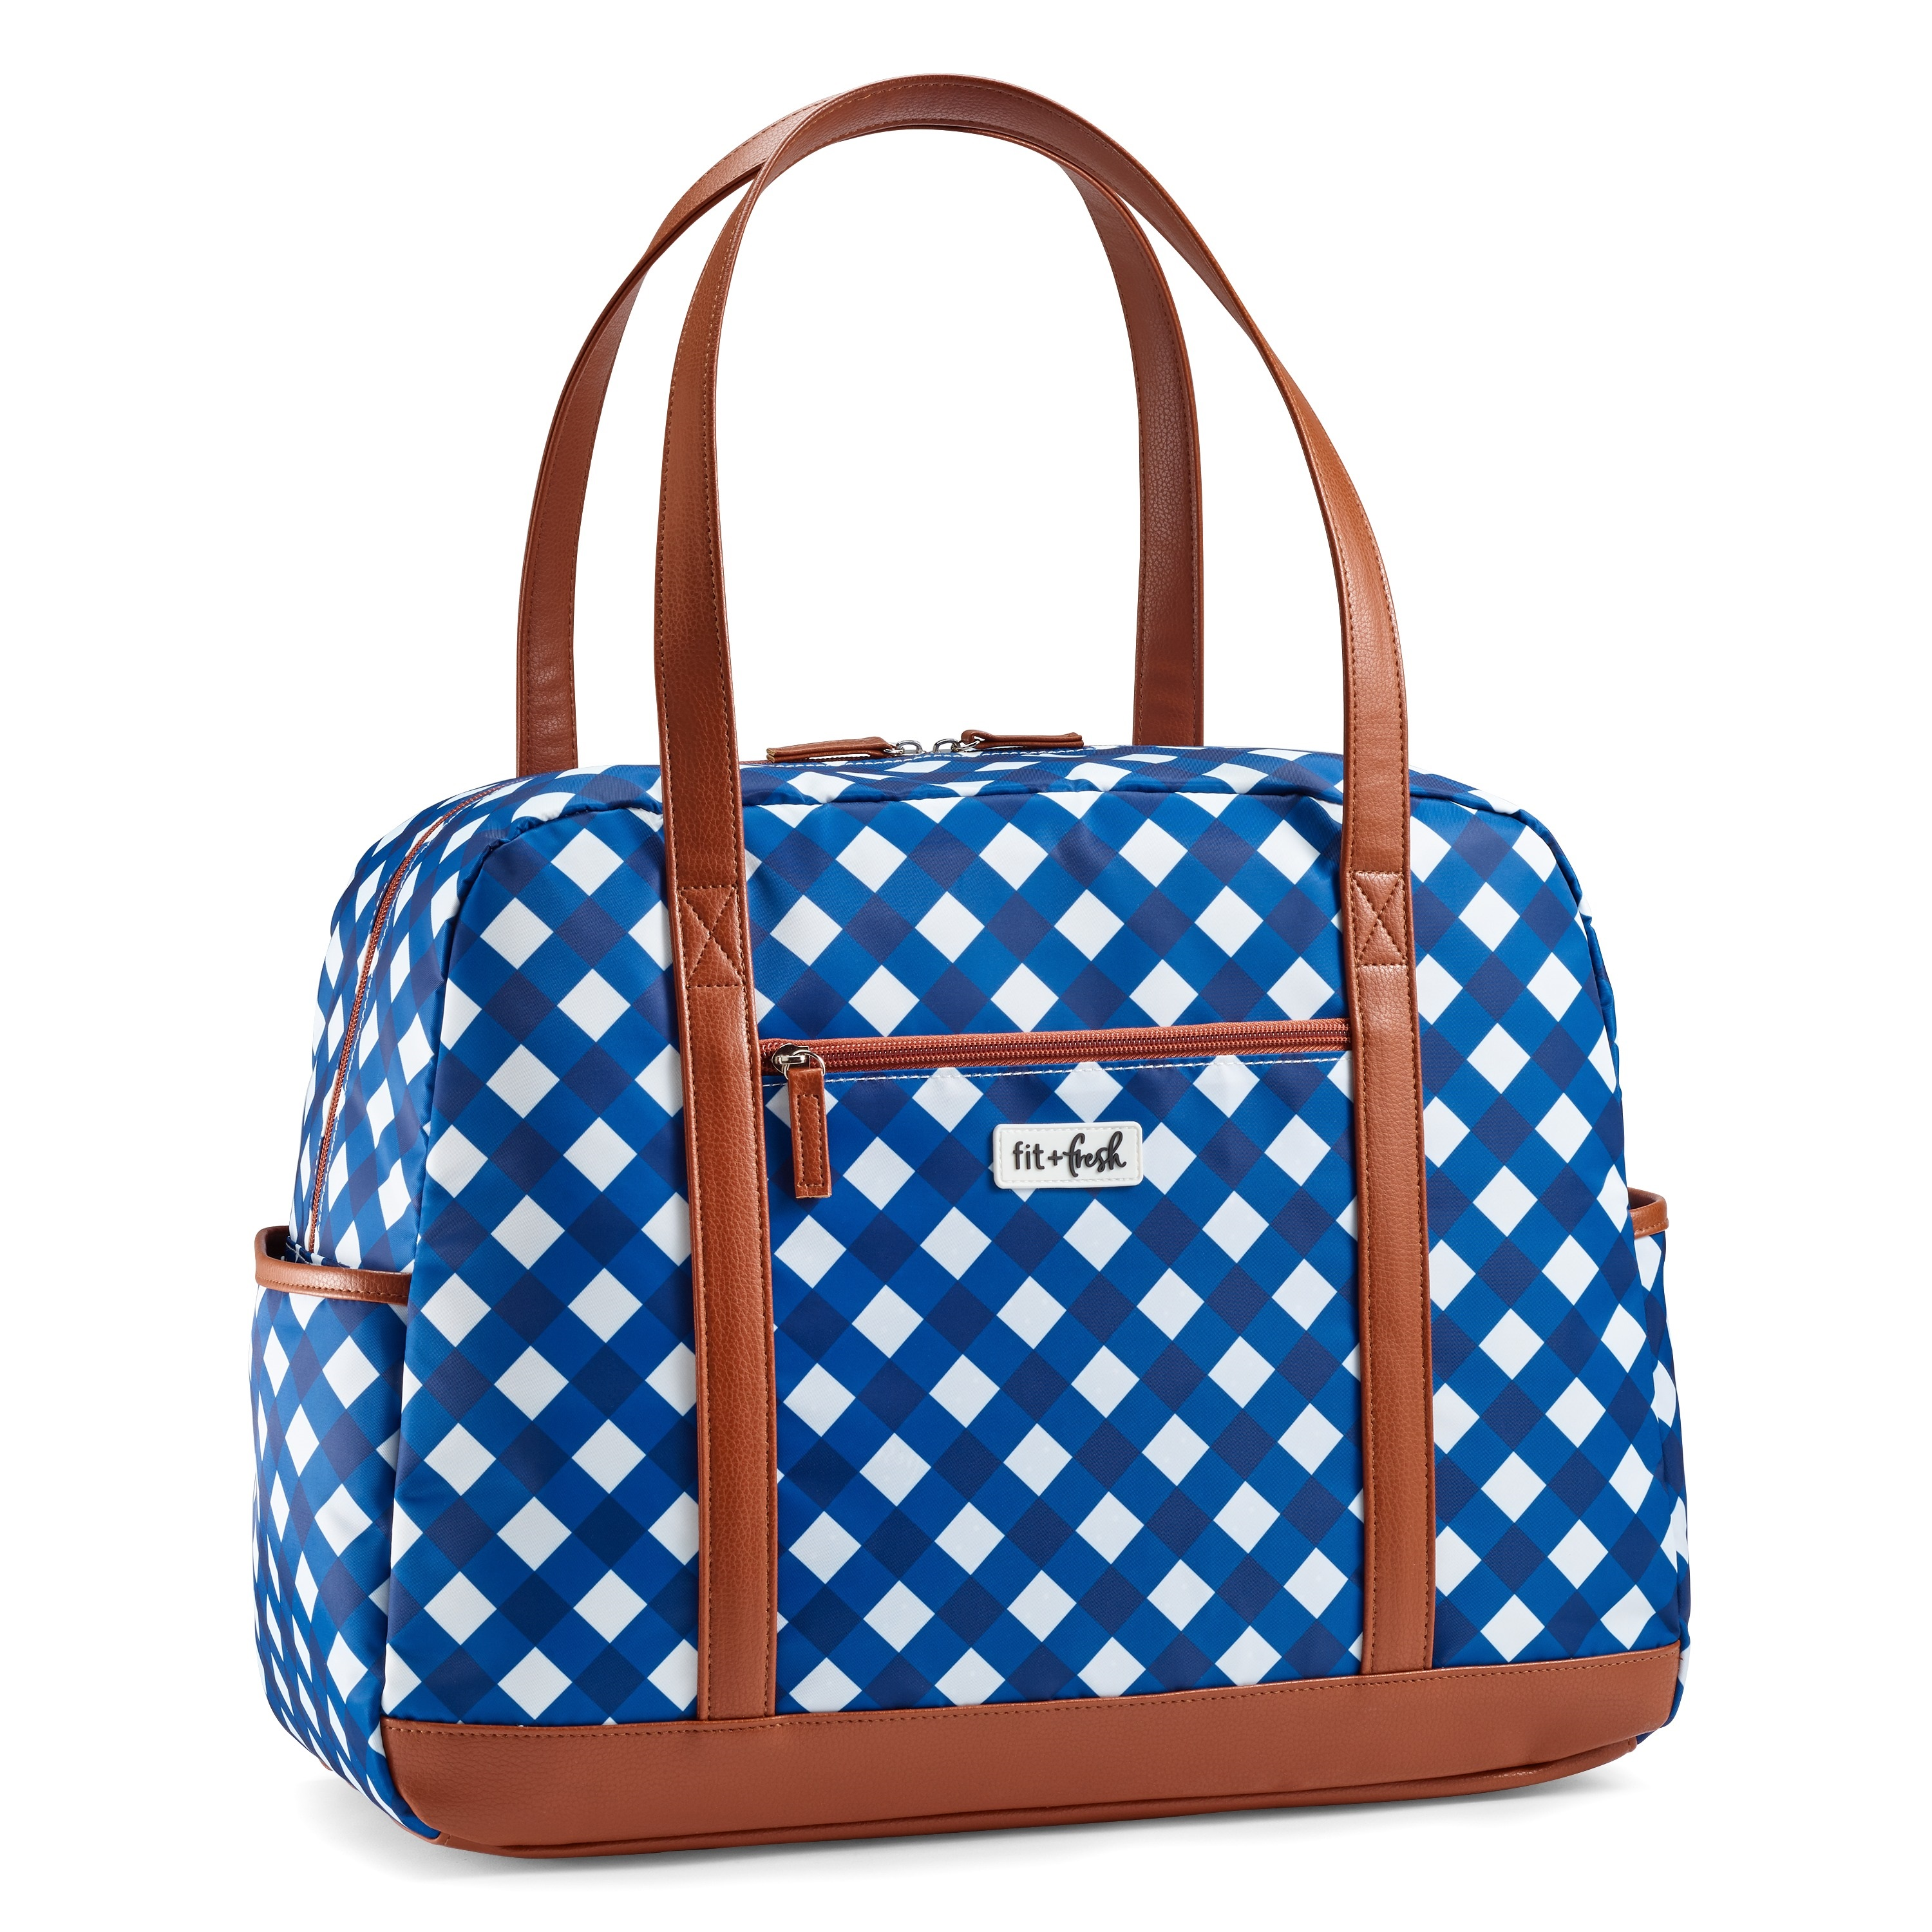 FIT & FRESH 7217FFWB2467 CARRY ON TOTE IN CLASSIC NAVY